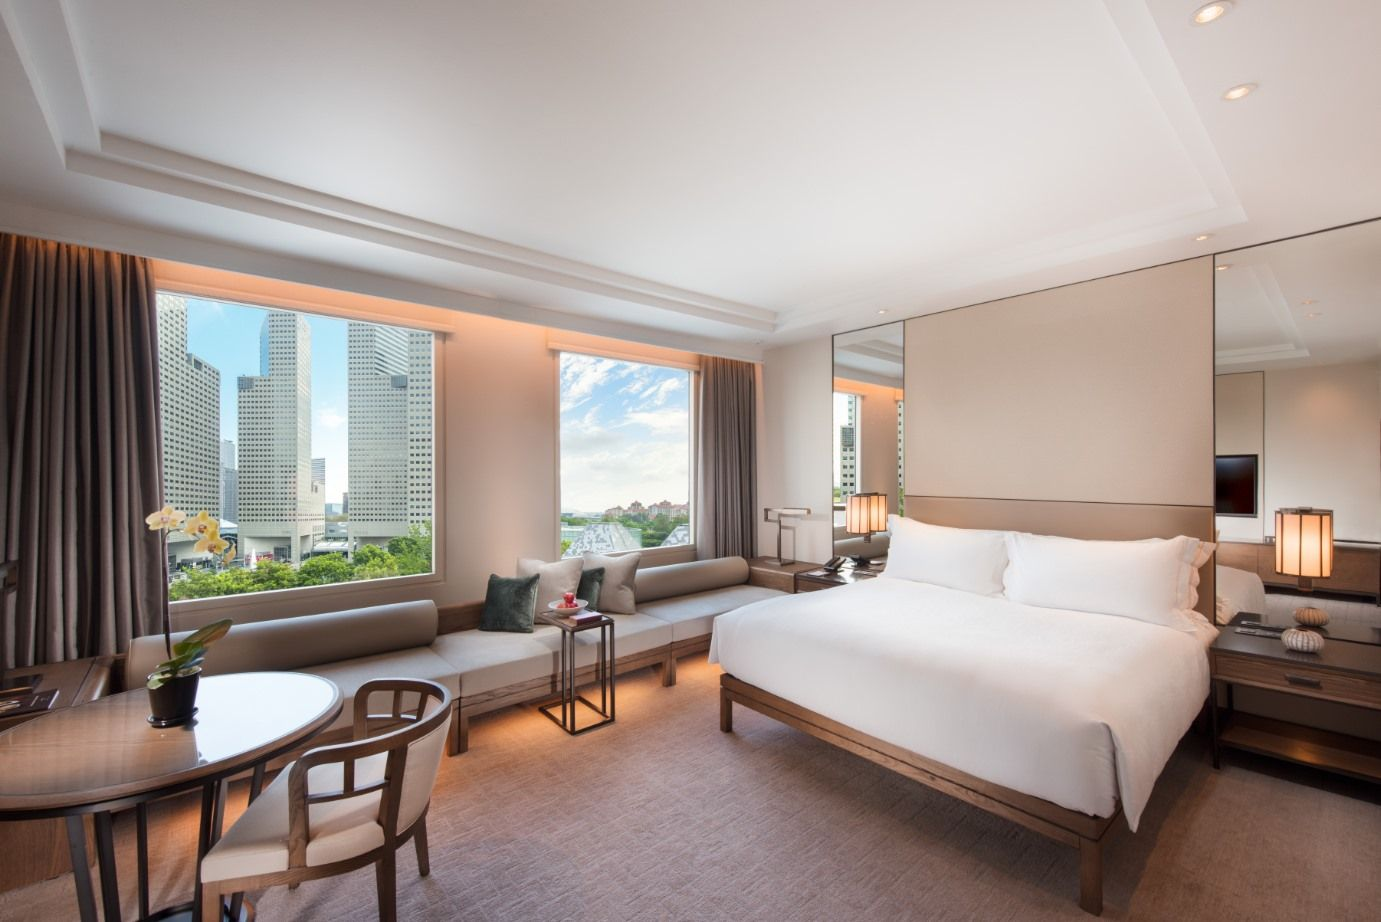 Conrad Centennial Singapore: Hotel Staycation Review